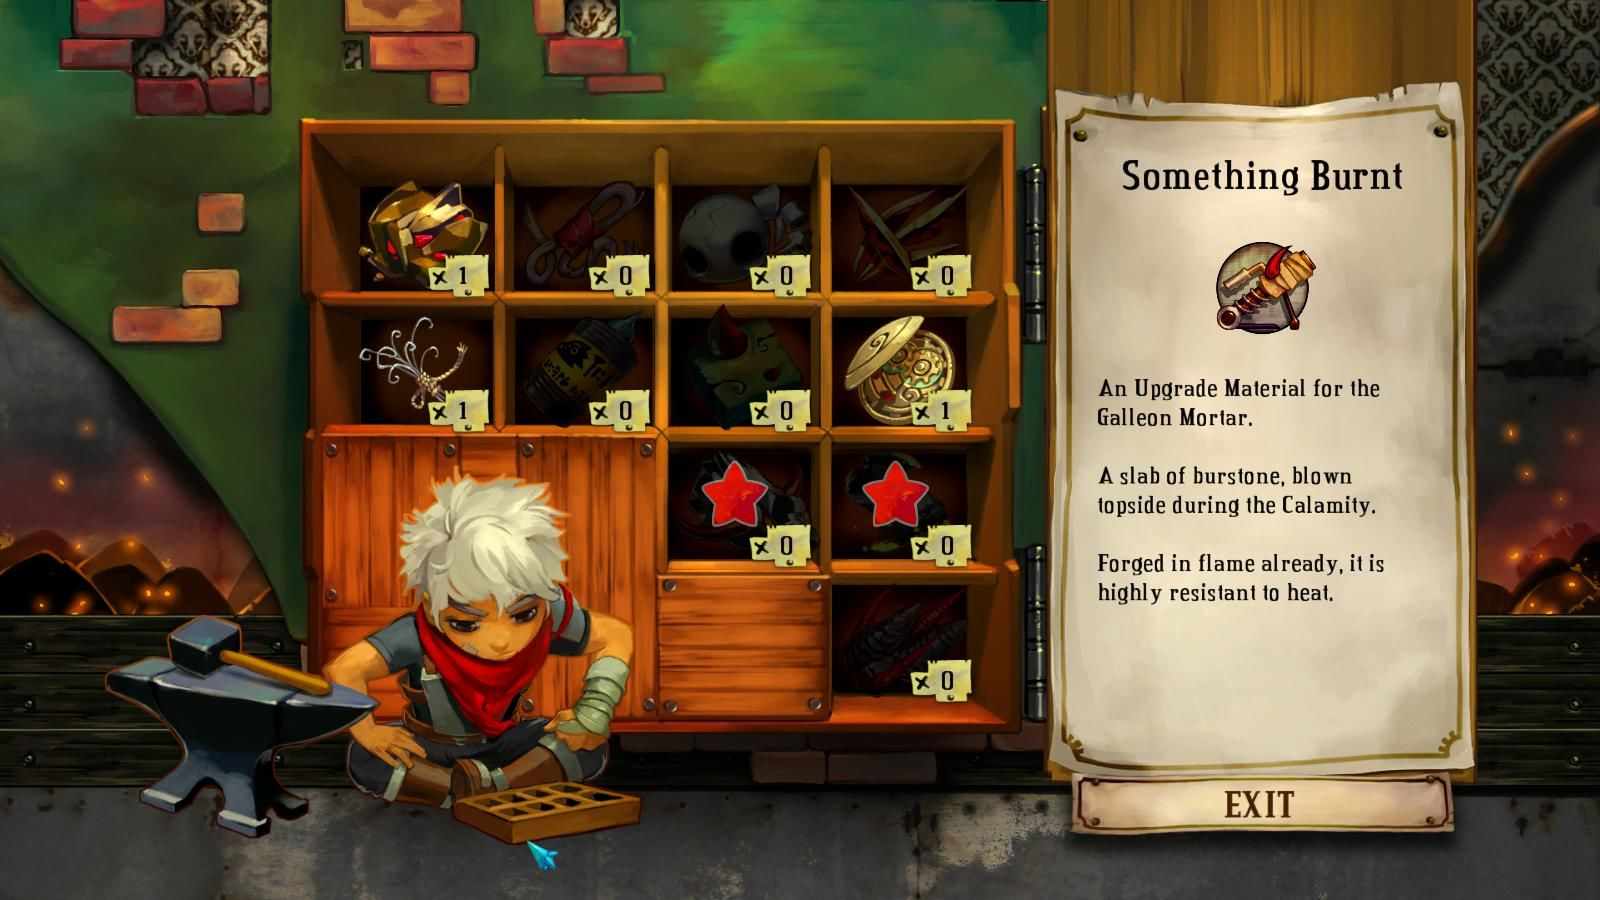 https://i1.wp.com/www.mobygames.com/images/shots/l/529849-bastion-windows-screenshot-here-is-the-forge-a-place-which.jpg